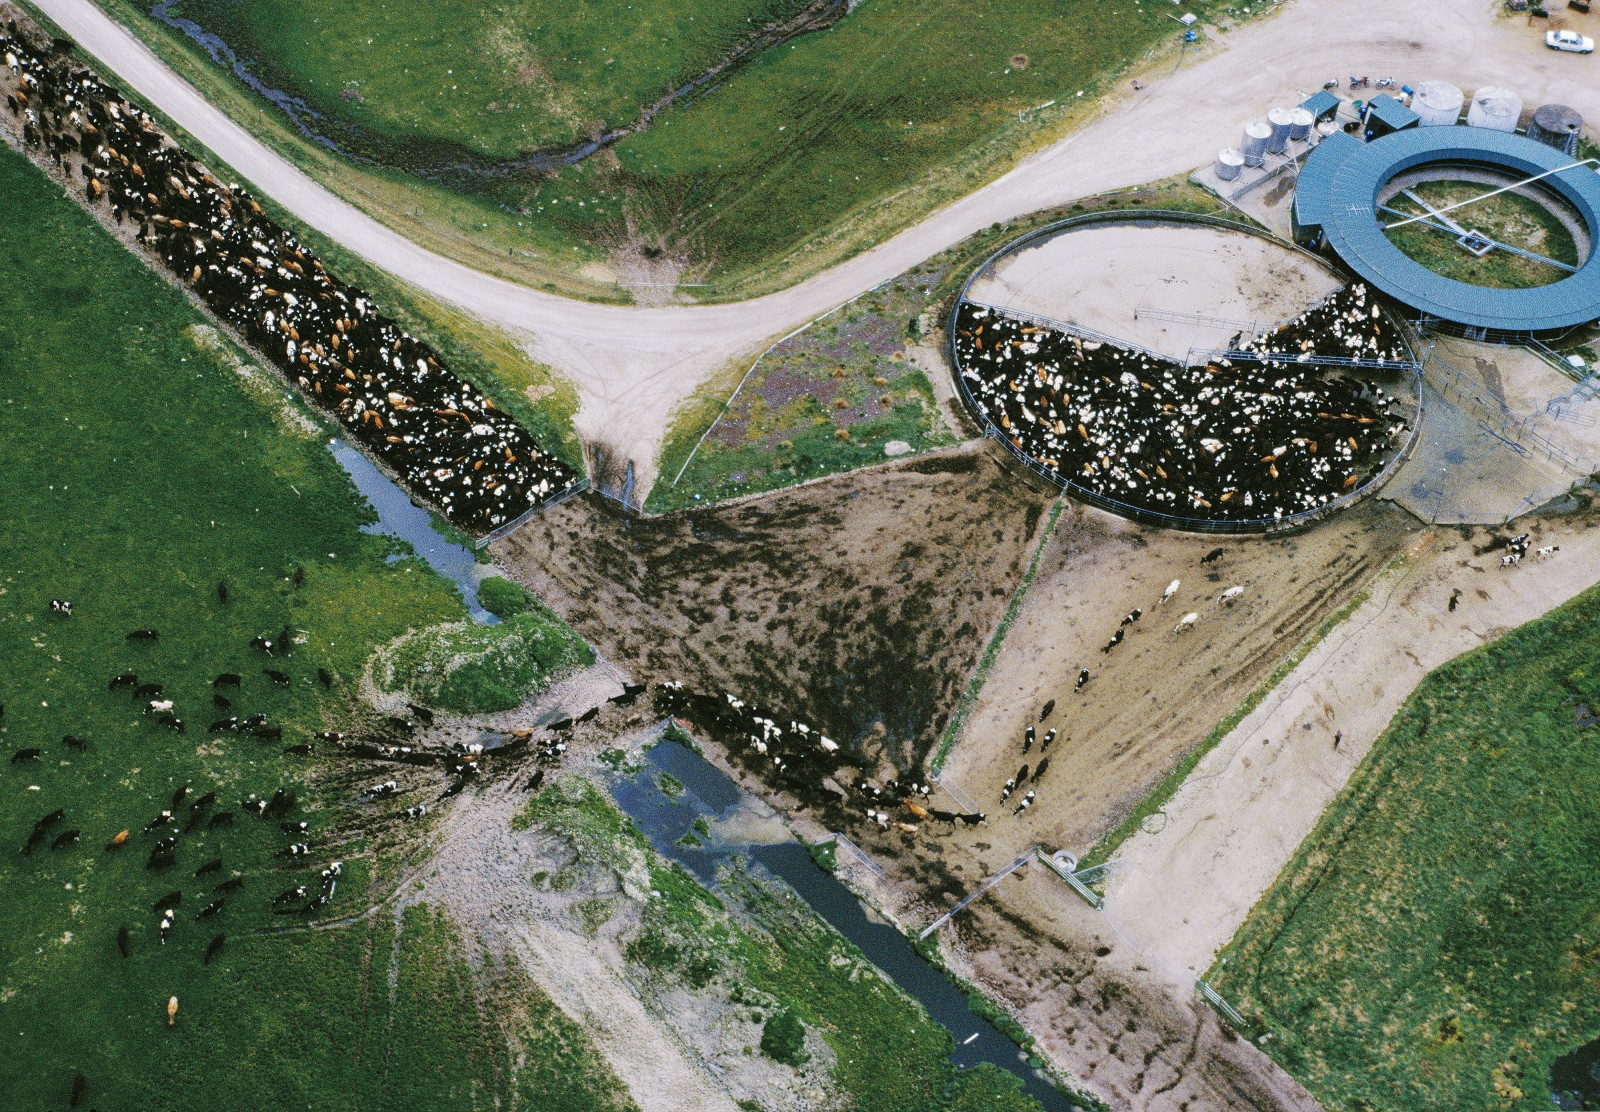 Two large herds, each of about 650 cows, are milked twice a day through this rotary shed east of Taupo. Big black-and-white Friesians—Holstein-Friesians, to give them their full name—make up most of the herd, with smaller brown Jerseys a minority. Nationally, Friesian is the leading breed, with Jersey a strong second. Brown Swiss—a major breed internationally—is almost unknown here.